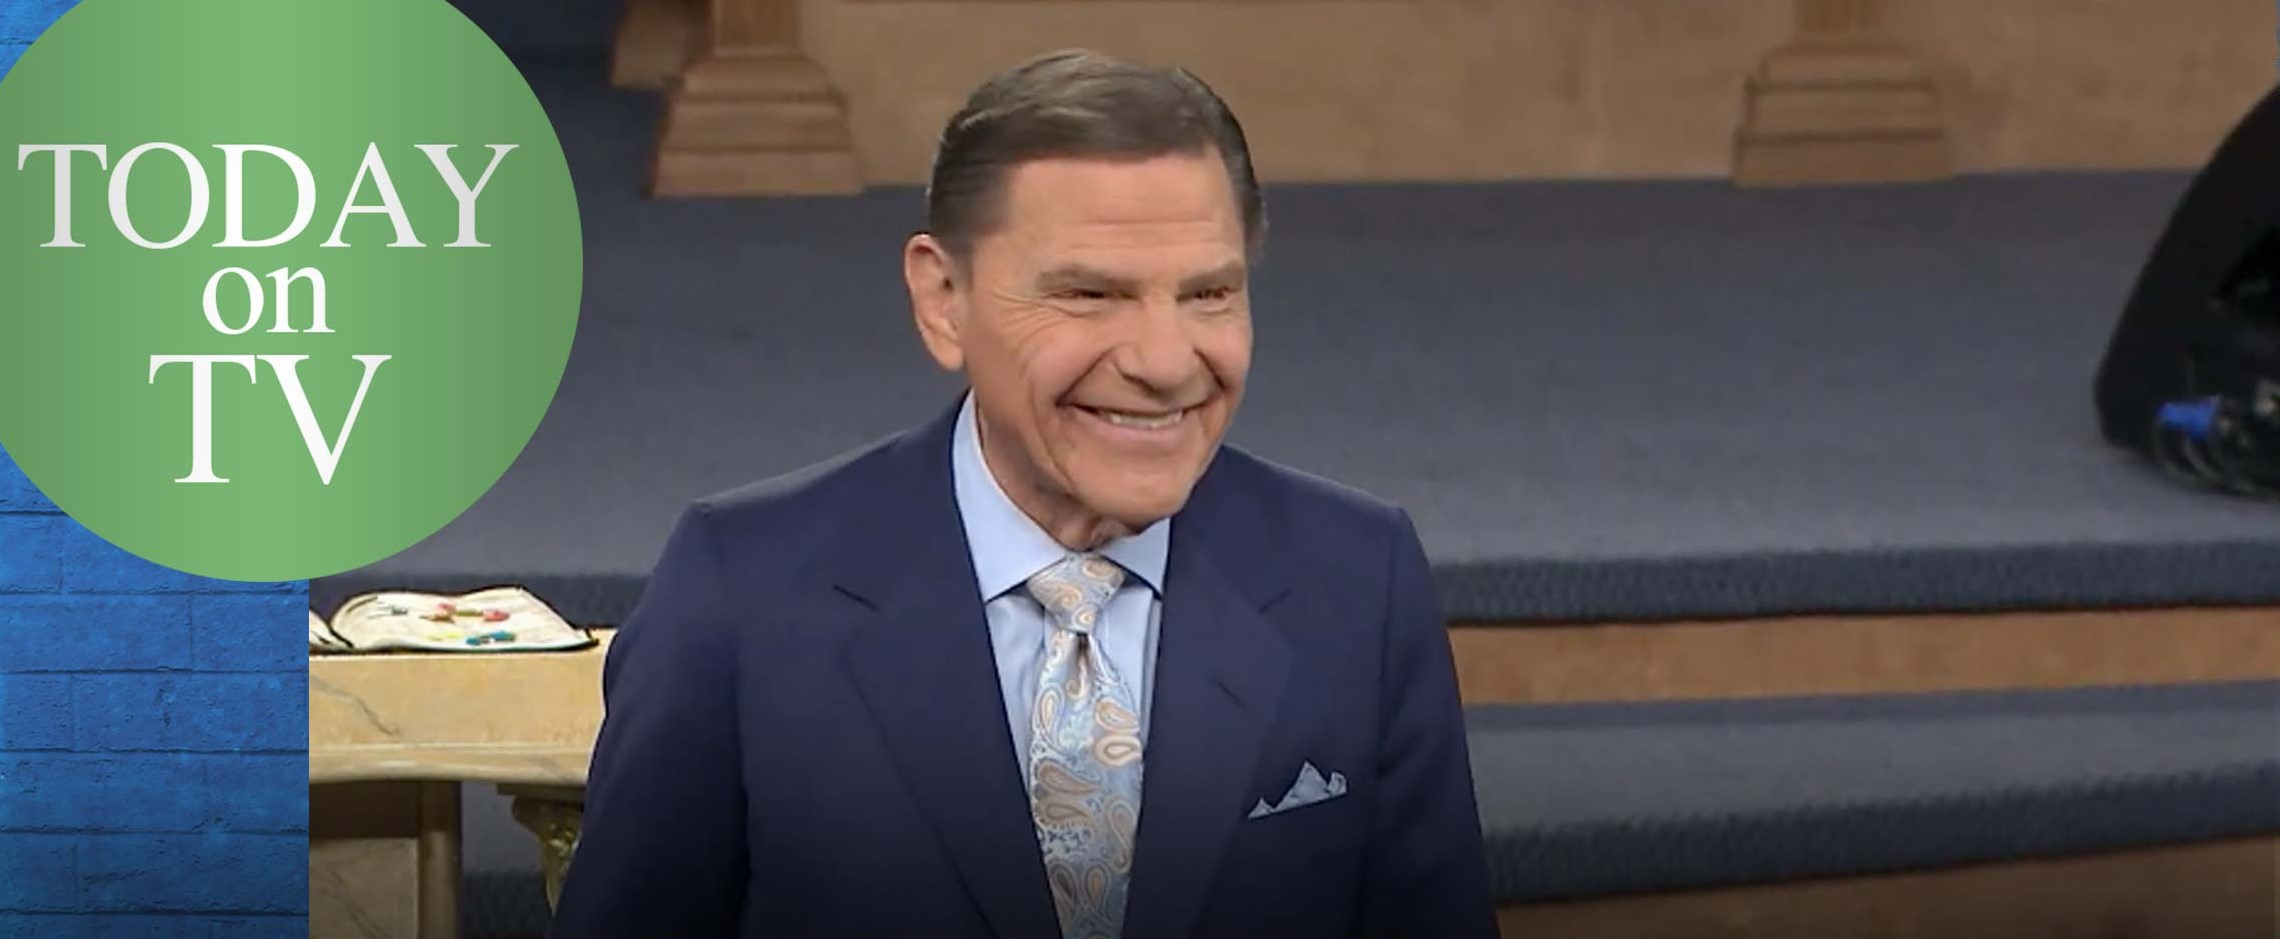 BVOV TV link 21-Jun-2021 - The Goodness of God Is Here to Heal